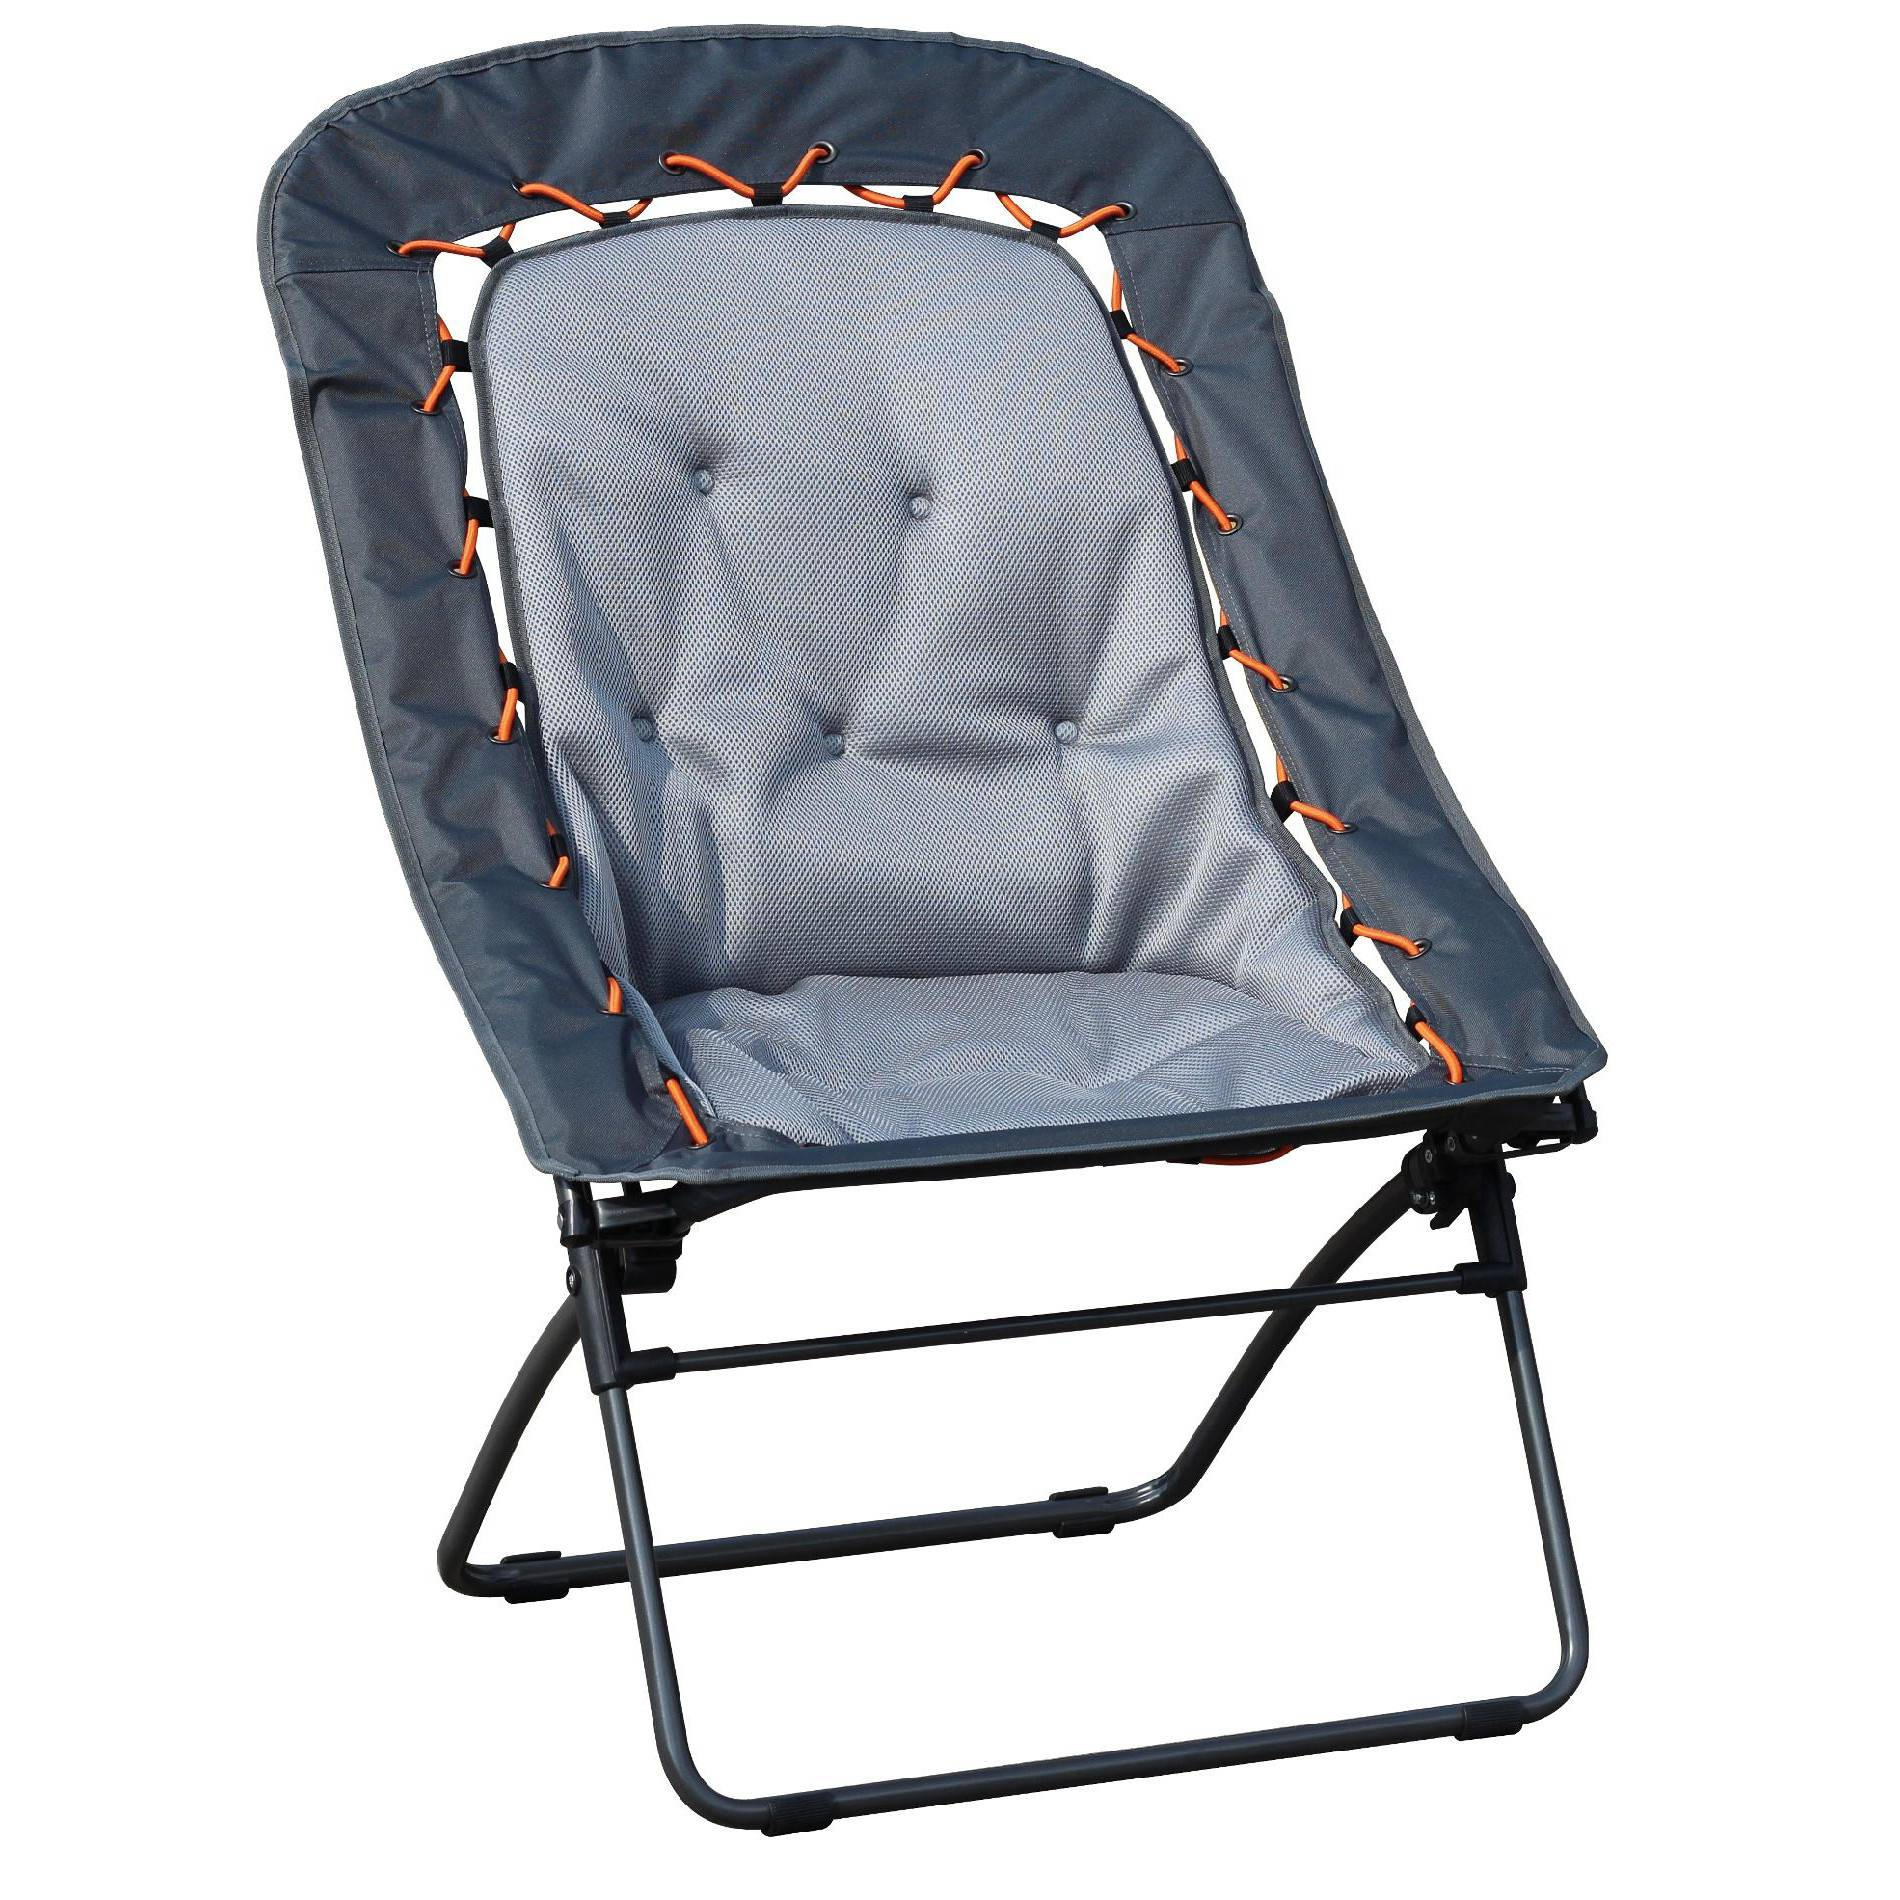 Best Bungee Chairs With Cushion Buy 7 Best Bunjo Bungee Chair